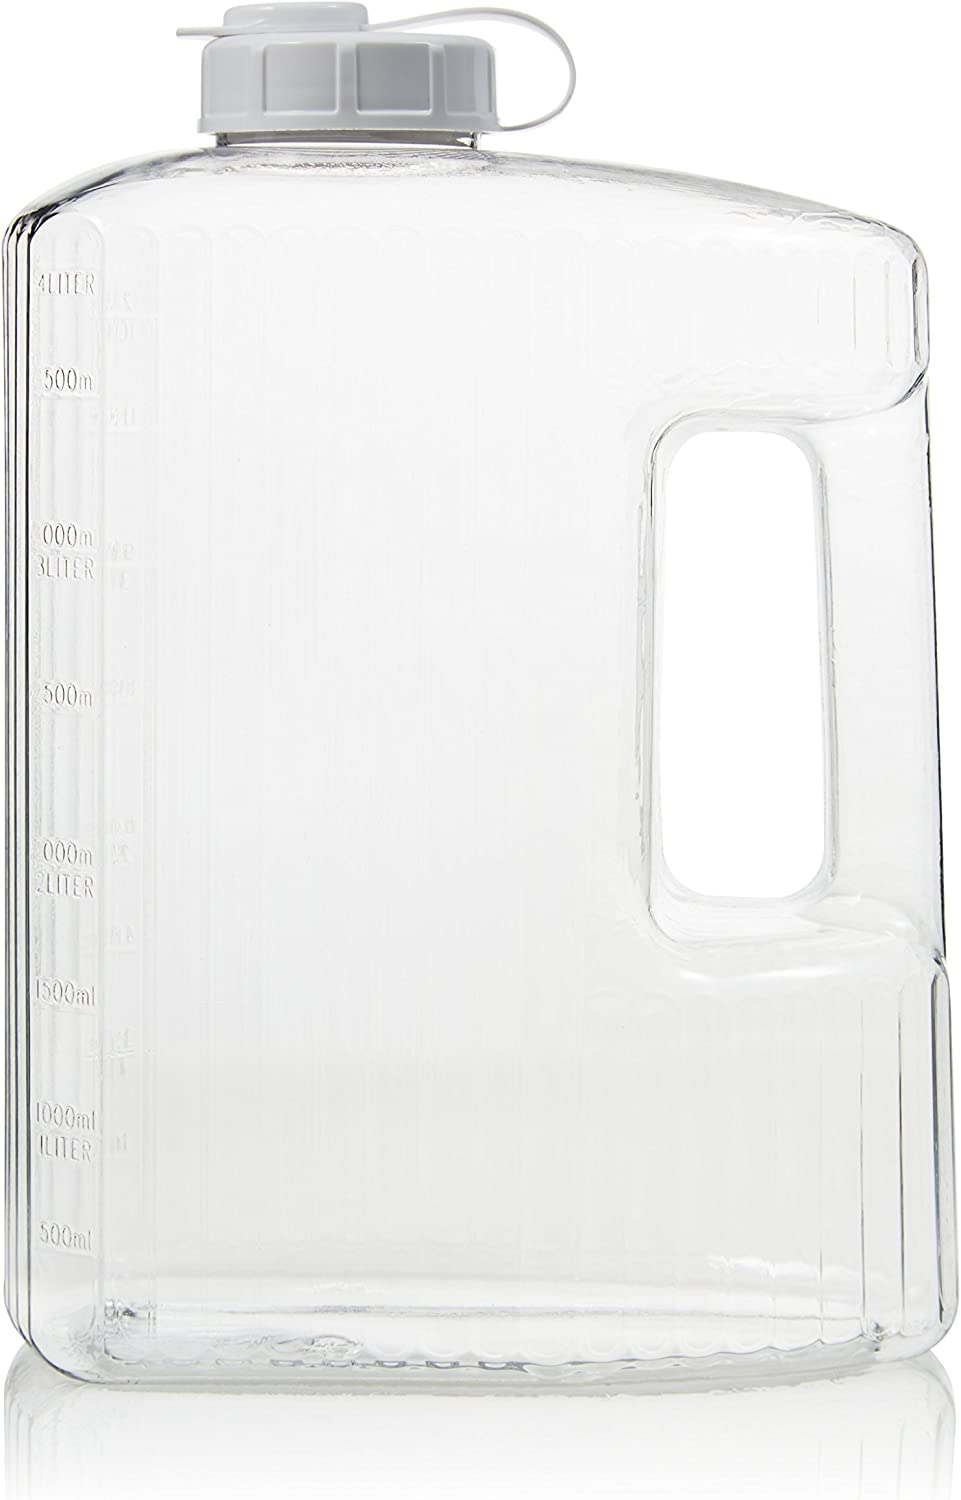 Arrow Home Products 14801 Clear H2O Visions 1 Gallon Refrigerator Bottle